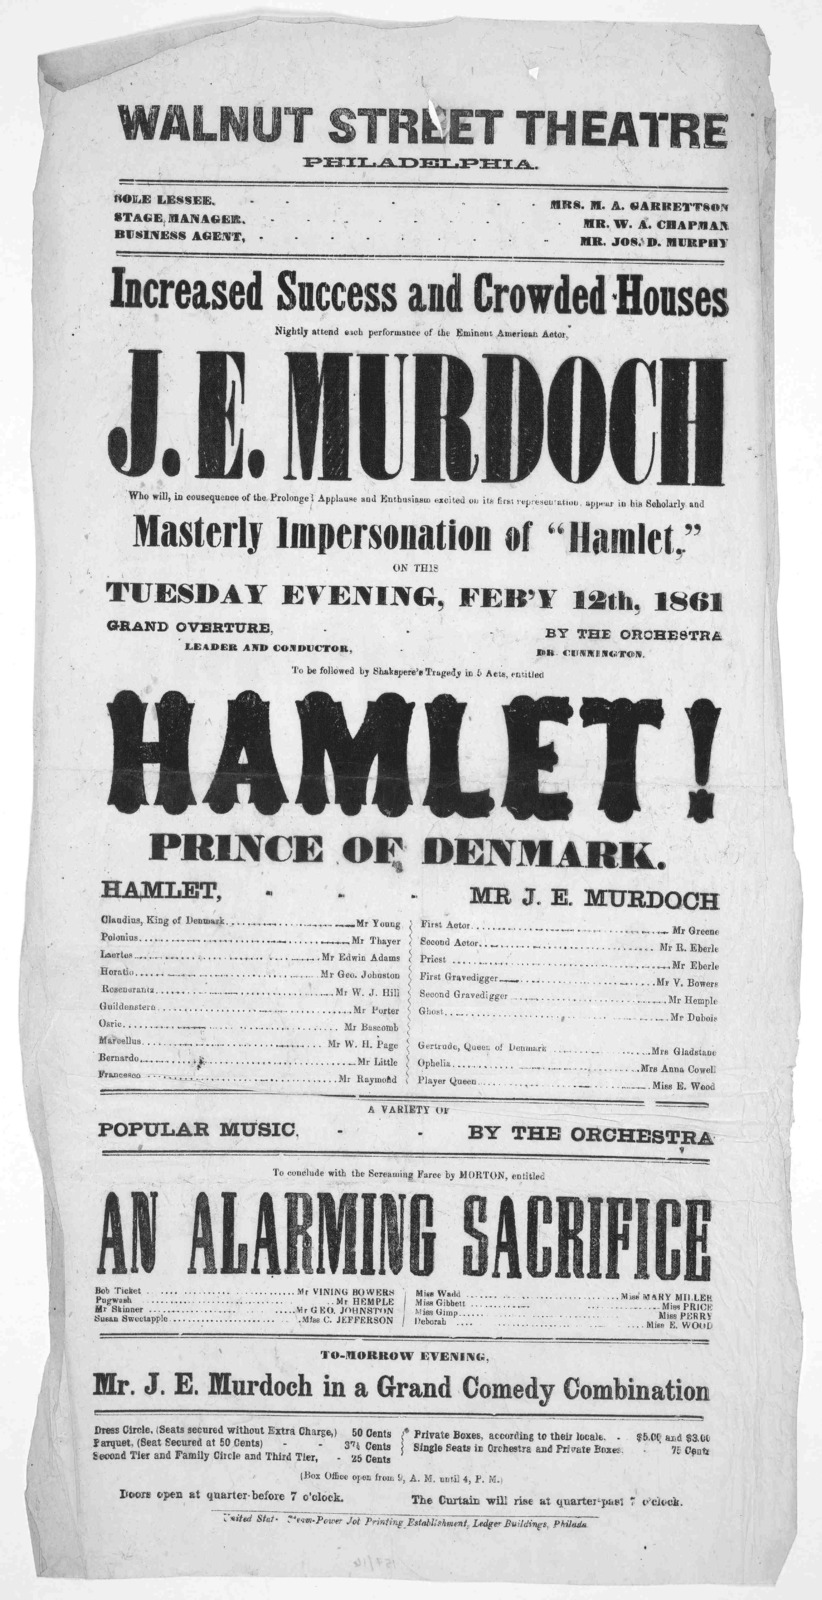 "... Increased success and crowded houses nightly attend each performance of the eminent American actor J. E. Murdoch ... masterly impersonation of ""Hamlet."" ... Philadelphia. United States Steam-Power Job printing establishment, Ledger buildings"